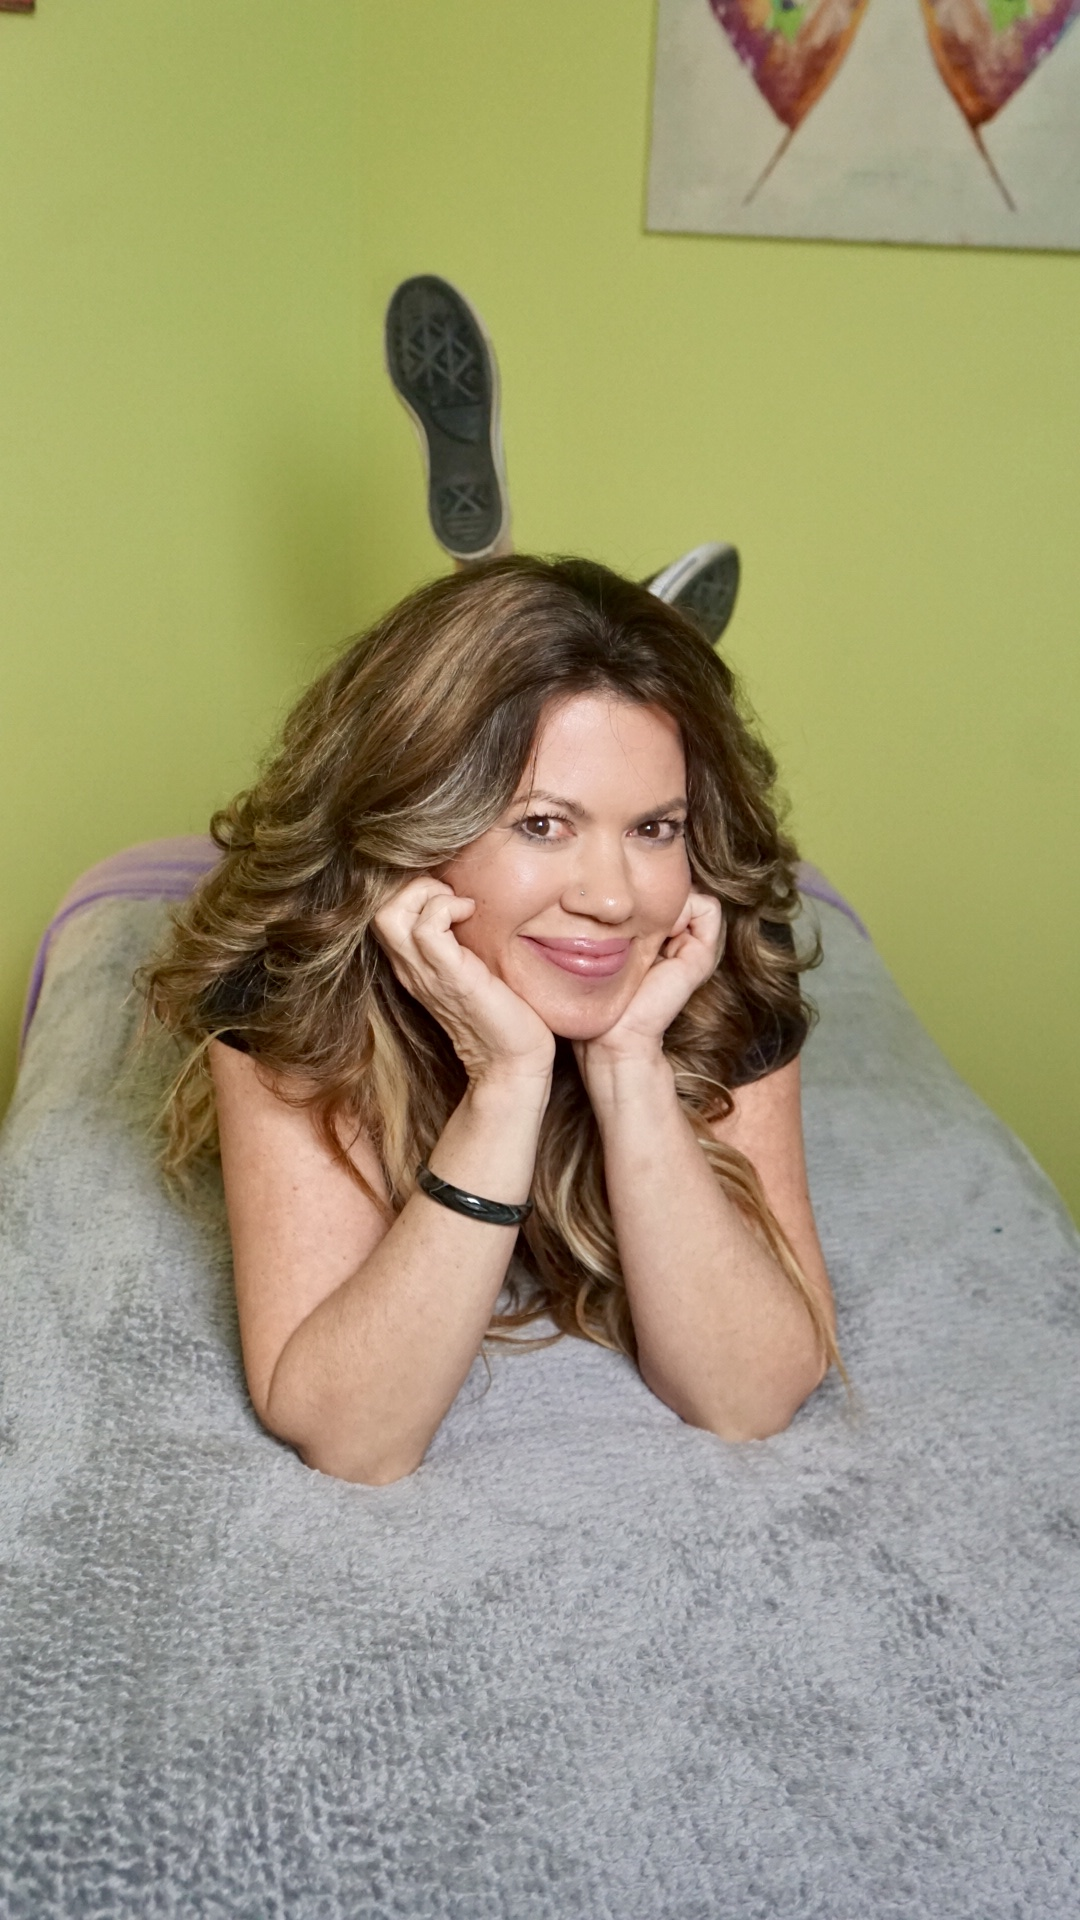 Stacey Rupe Spa Owner, Colon Hydrotherapist, Esthetician